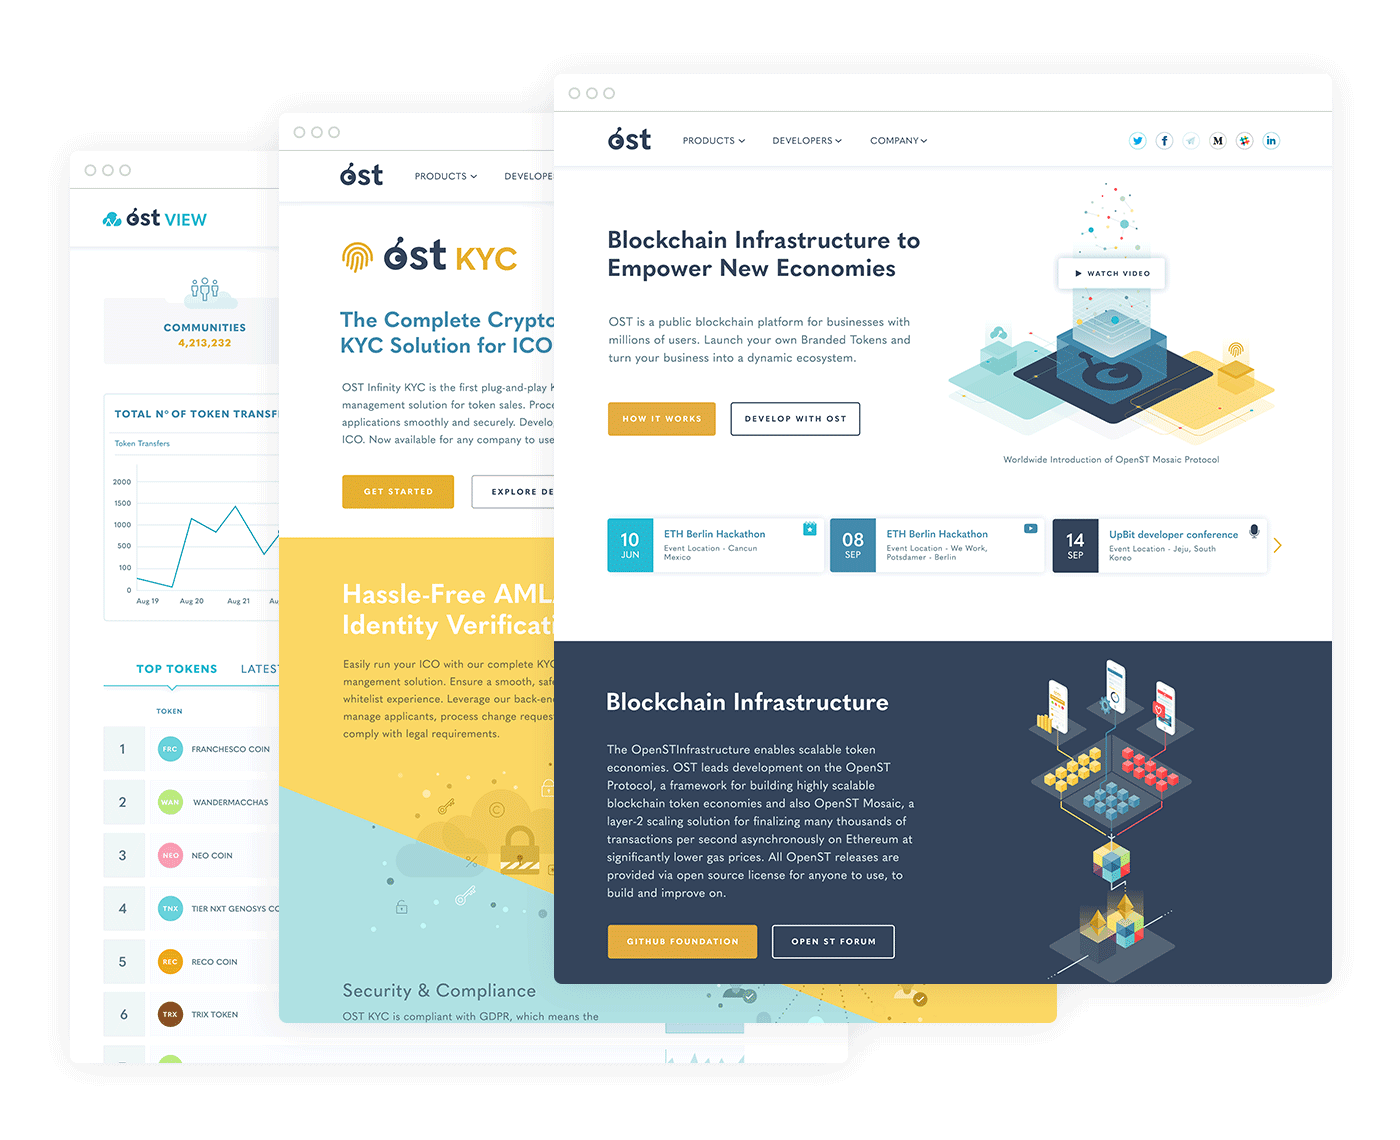 OST web site and OST VIEW user interface design